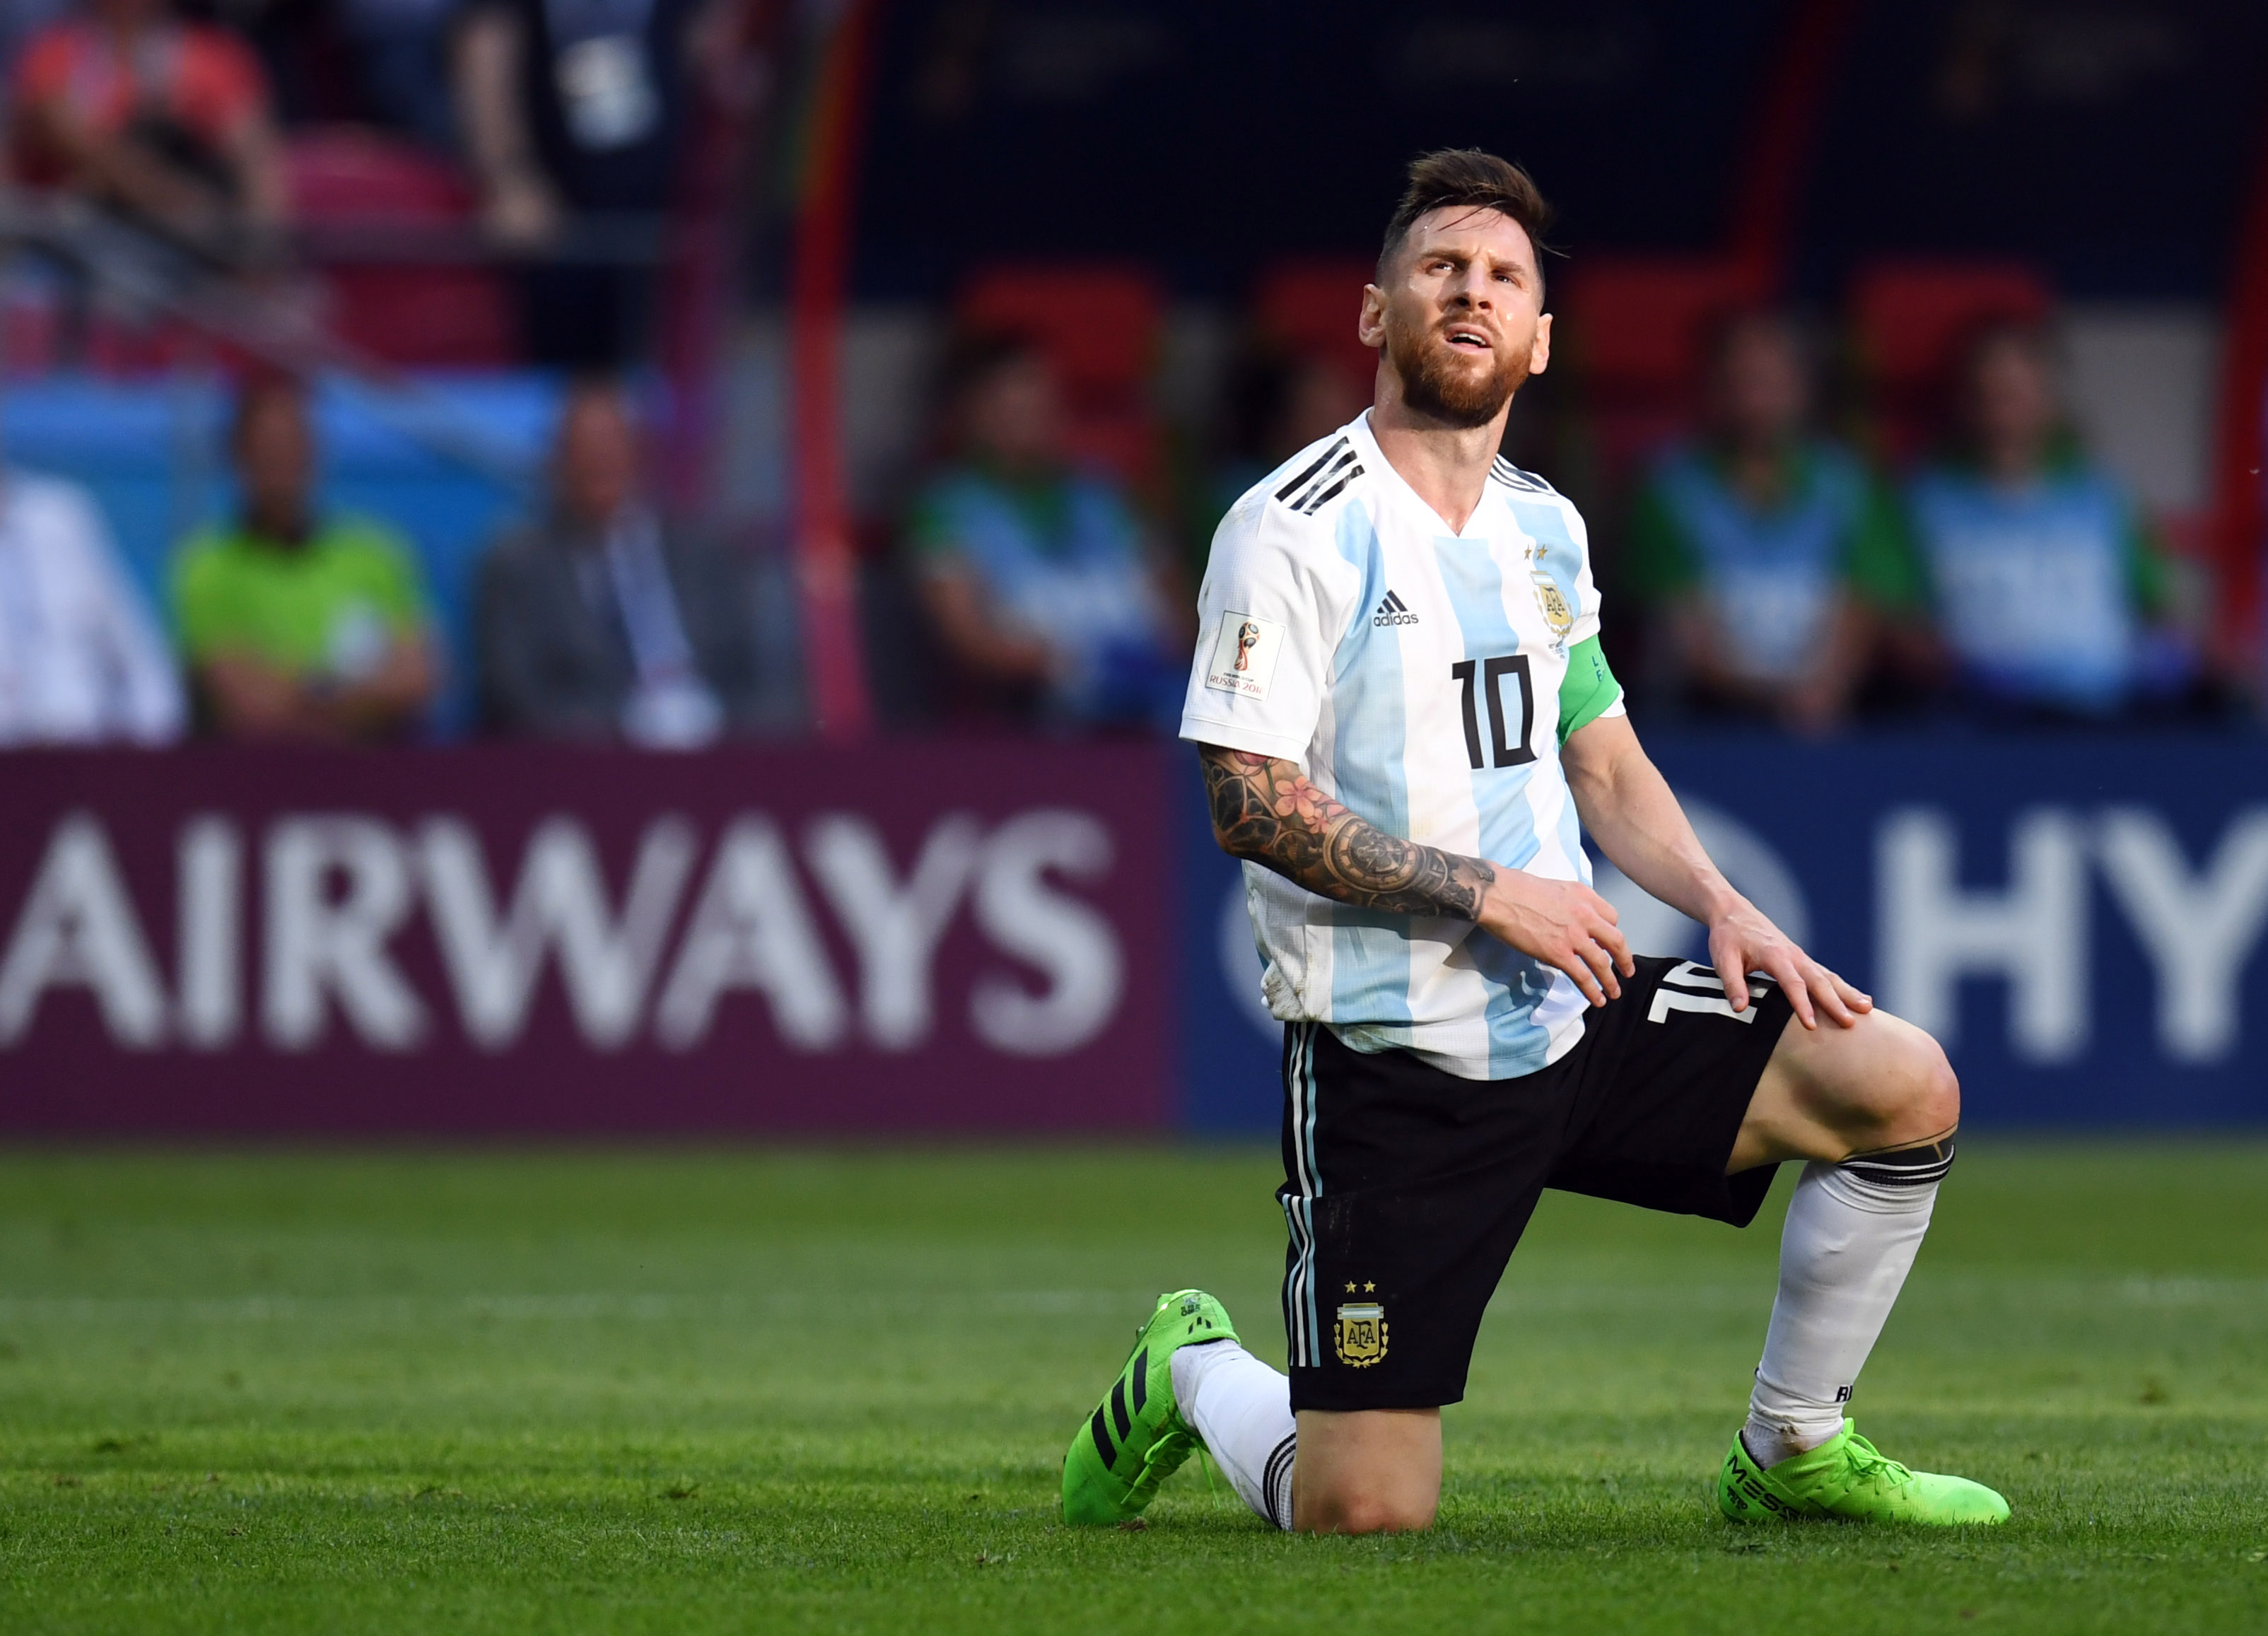 Argentina forward Lionel Messi (10) reacts in the round of 16 game against France during the FIFA World Cup 2018 at Kazan Stadium.